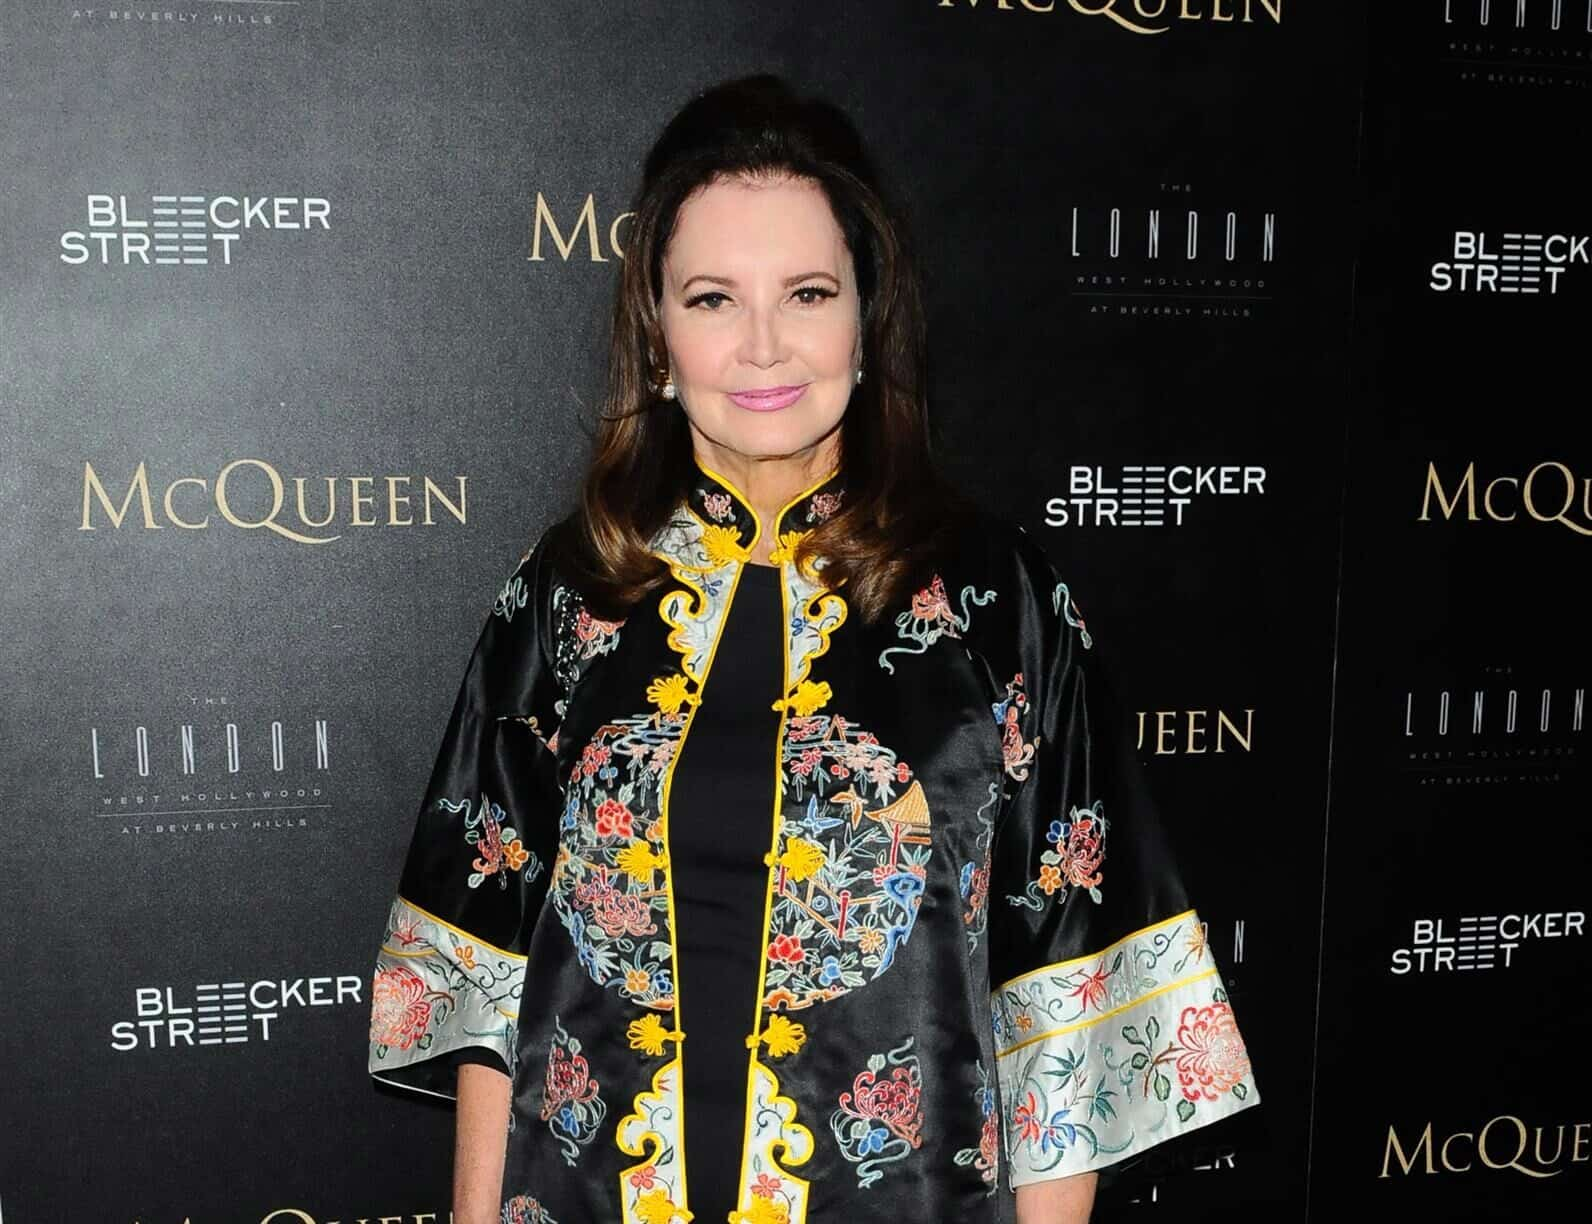 Patricia Altschul Confirms Southern Charm Will Return for Season 7 and Reveals When Filming Will Begin